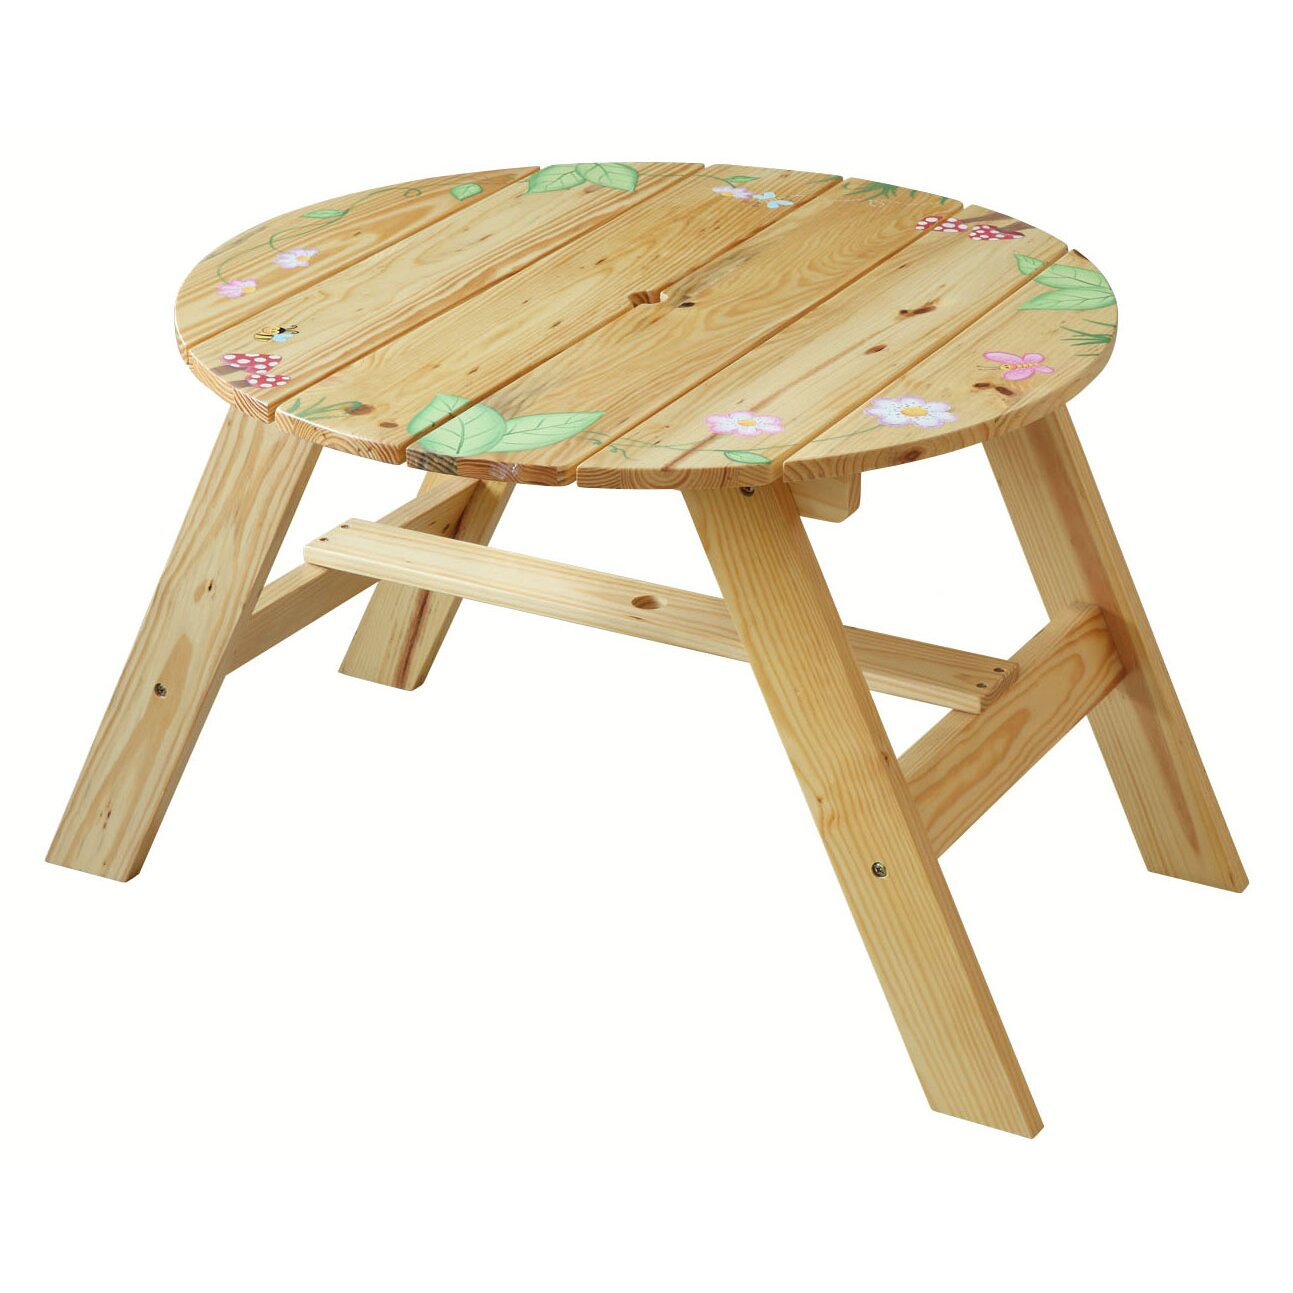 Magic Garden Table And Chair Set: Fantasy Fields Kids 3 Piece Round Table And Chair Set